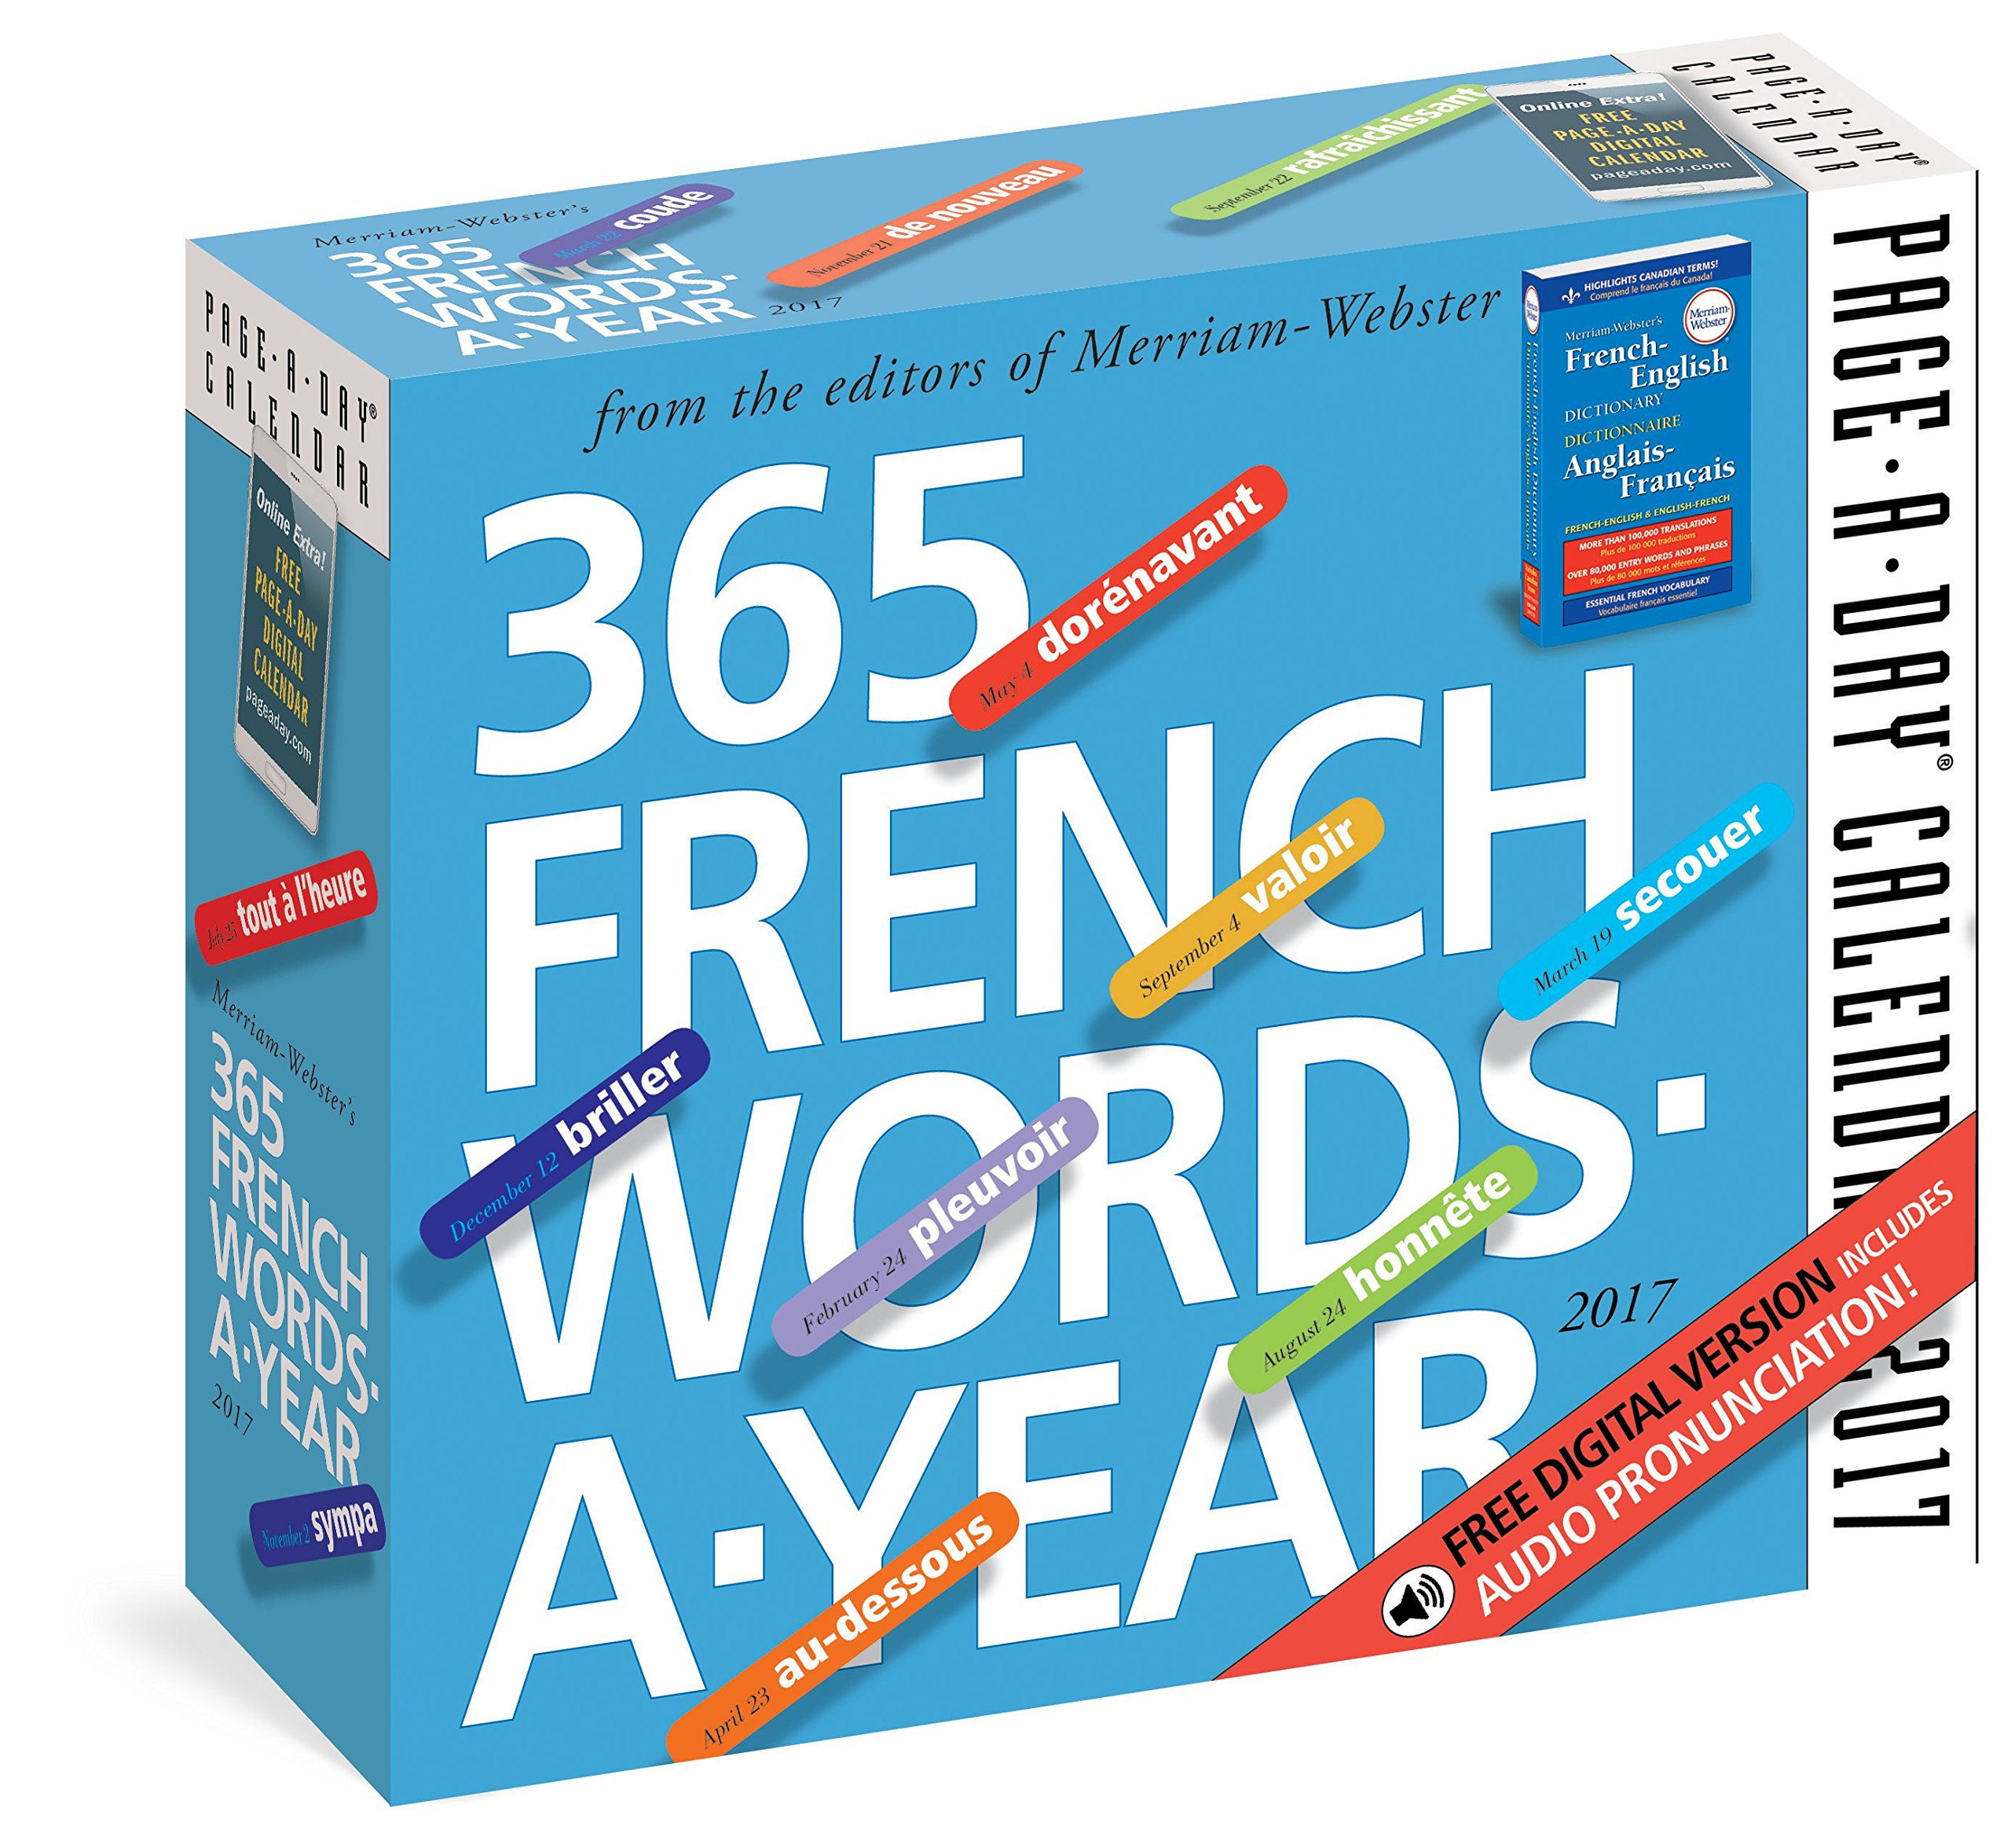 365 french words a year page a day calendar 2017 merriam webster